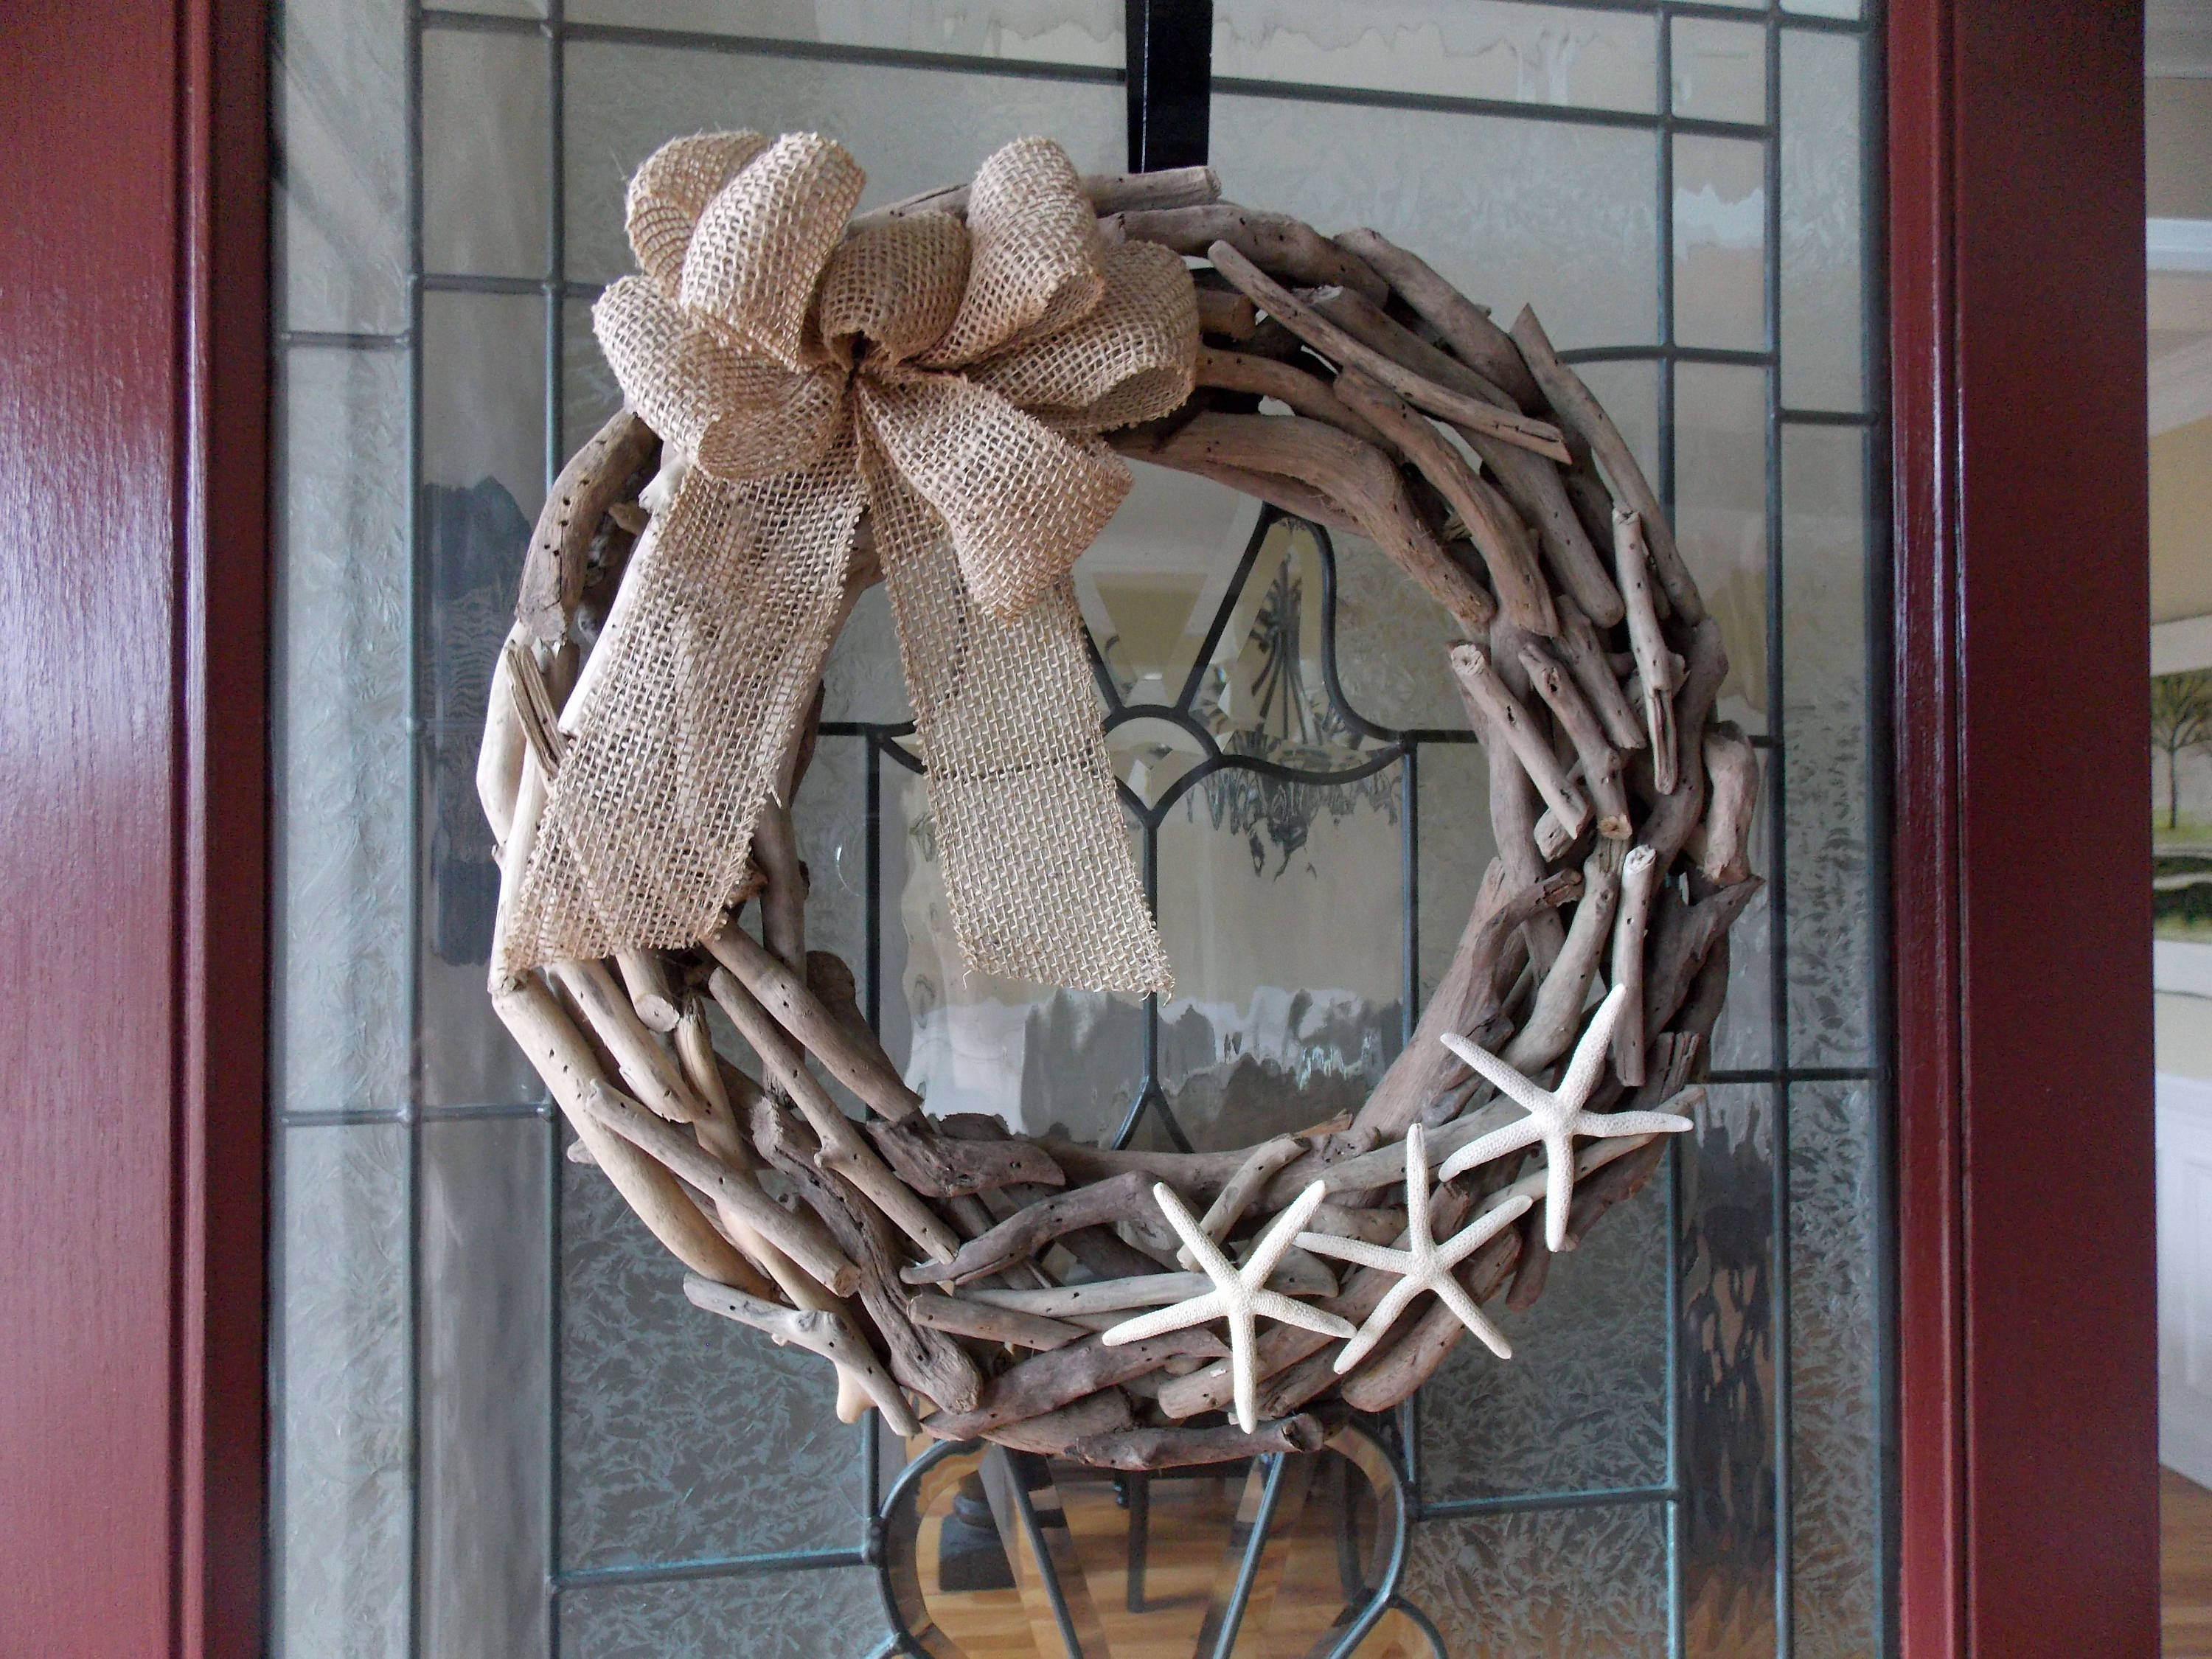 "19"" Driftwood Wreath-Starfish Wreath-Coastal Wreath-Beach Wreath-Seaside Wreath-Nautical Wreath-Beach Home Decor-Beach Decor-Summer Wreath"